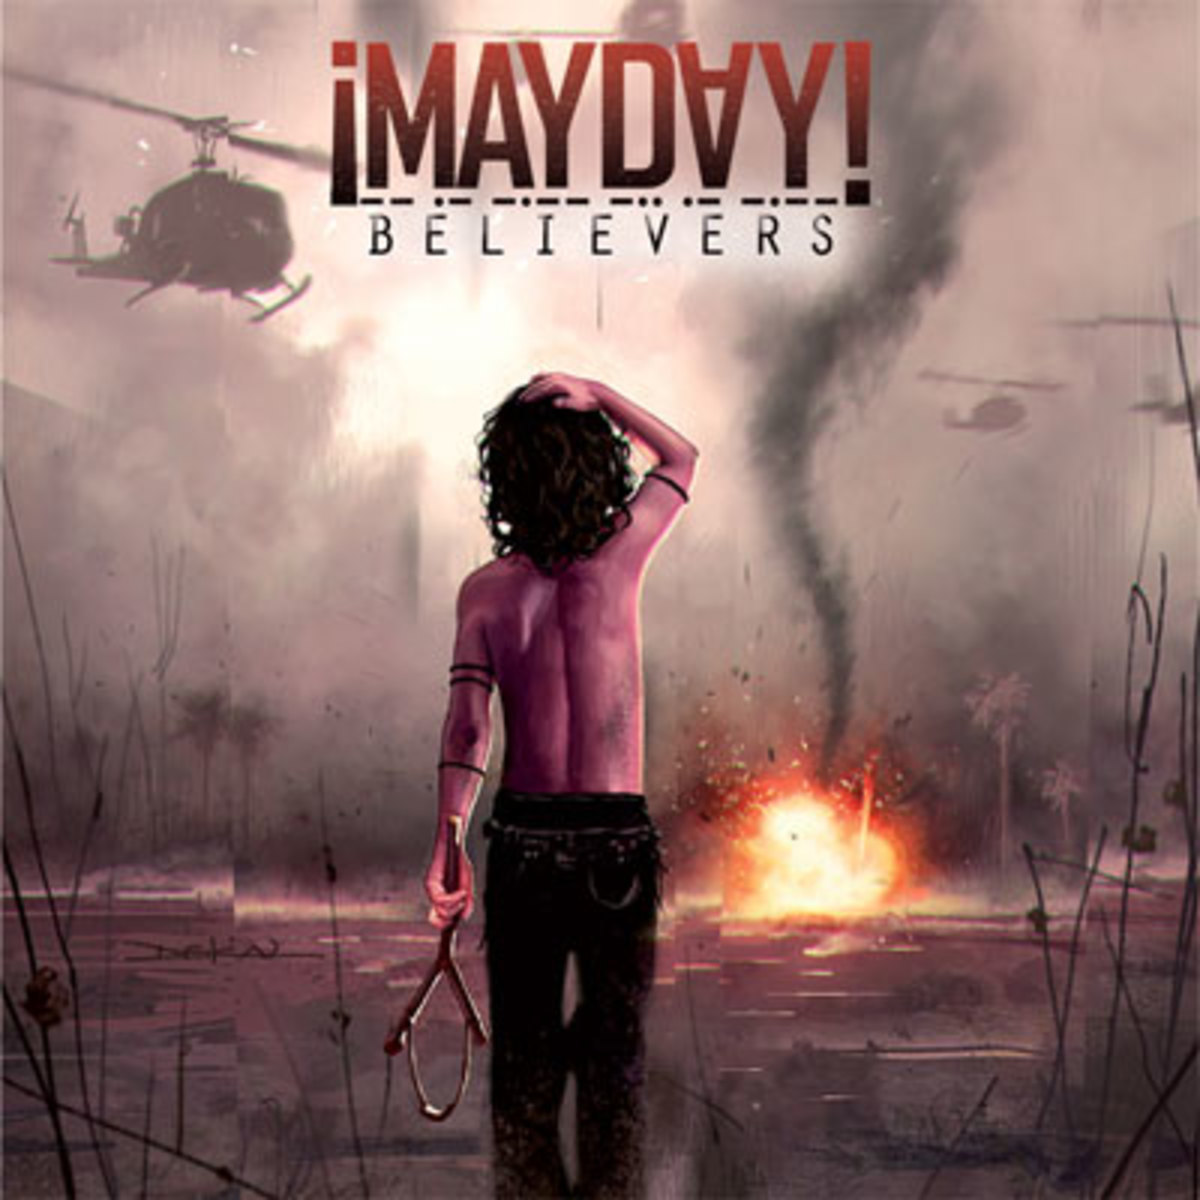 mayday-belivers.jpg